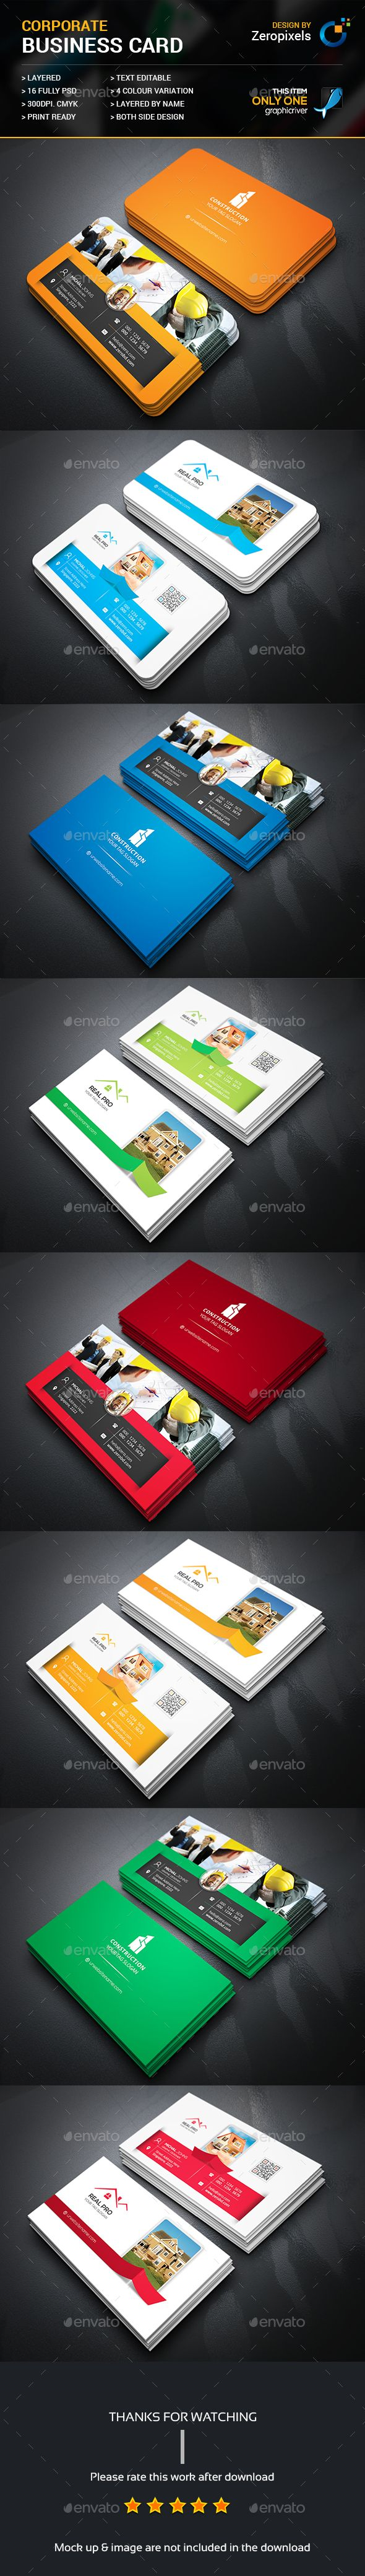 267 best business card images on pinterest